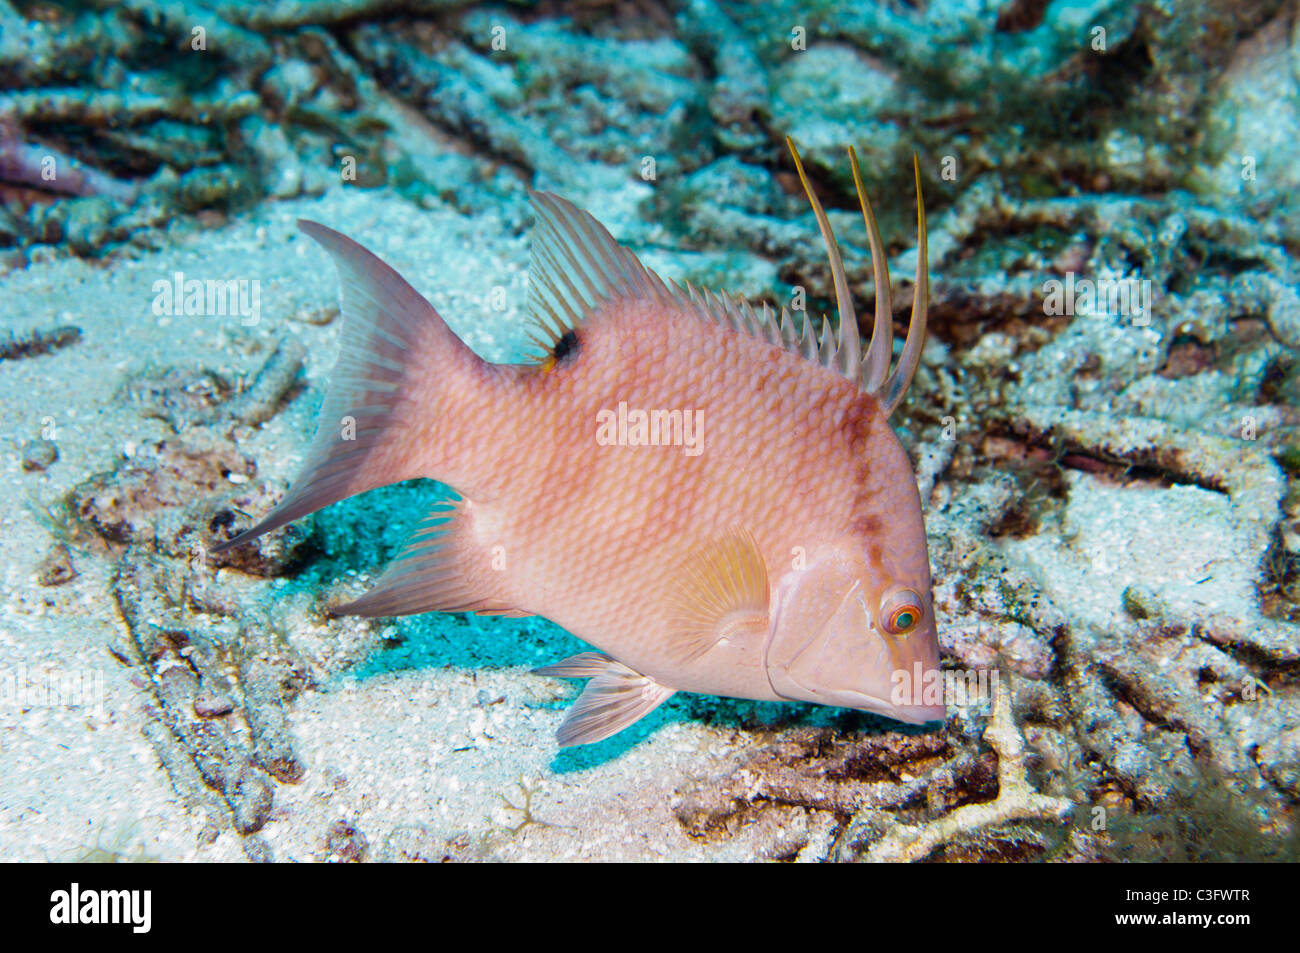 This young hogfish shows the mottled phase coloration patterns associated with this species. - Stock Image